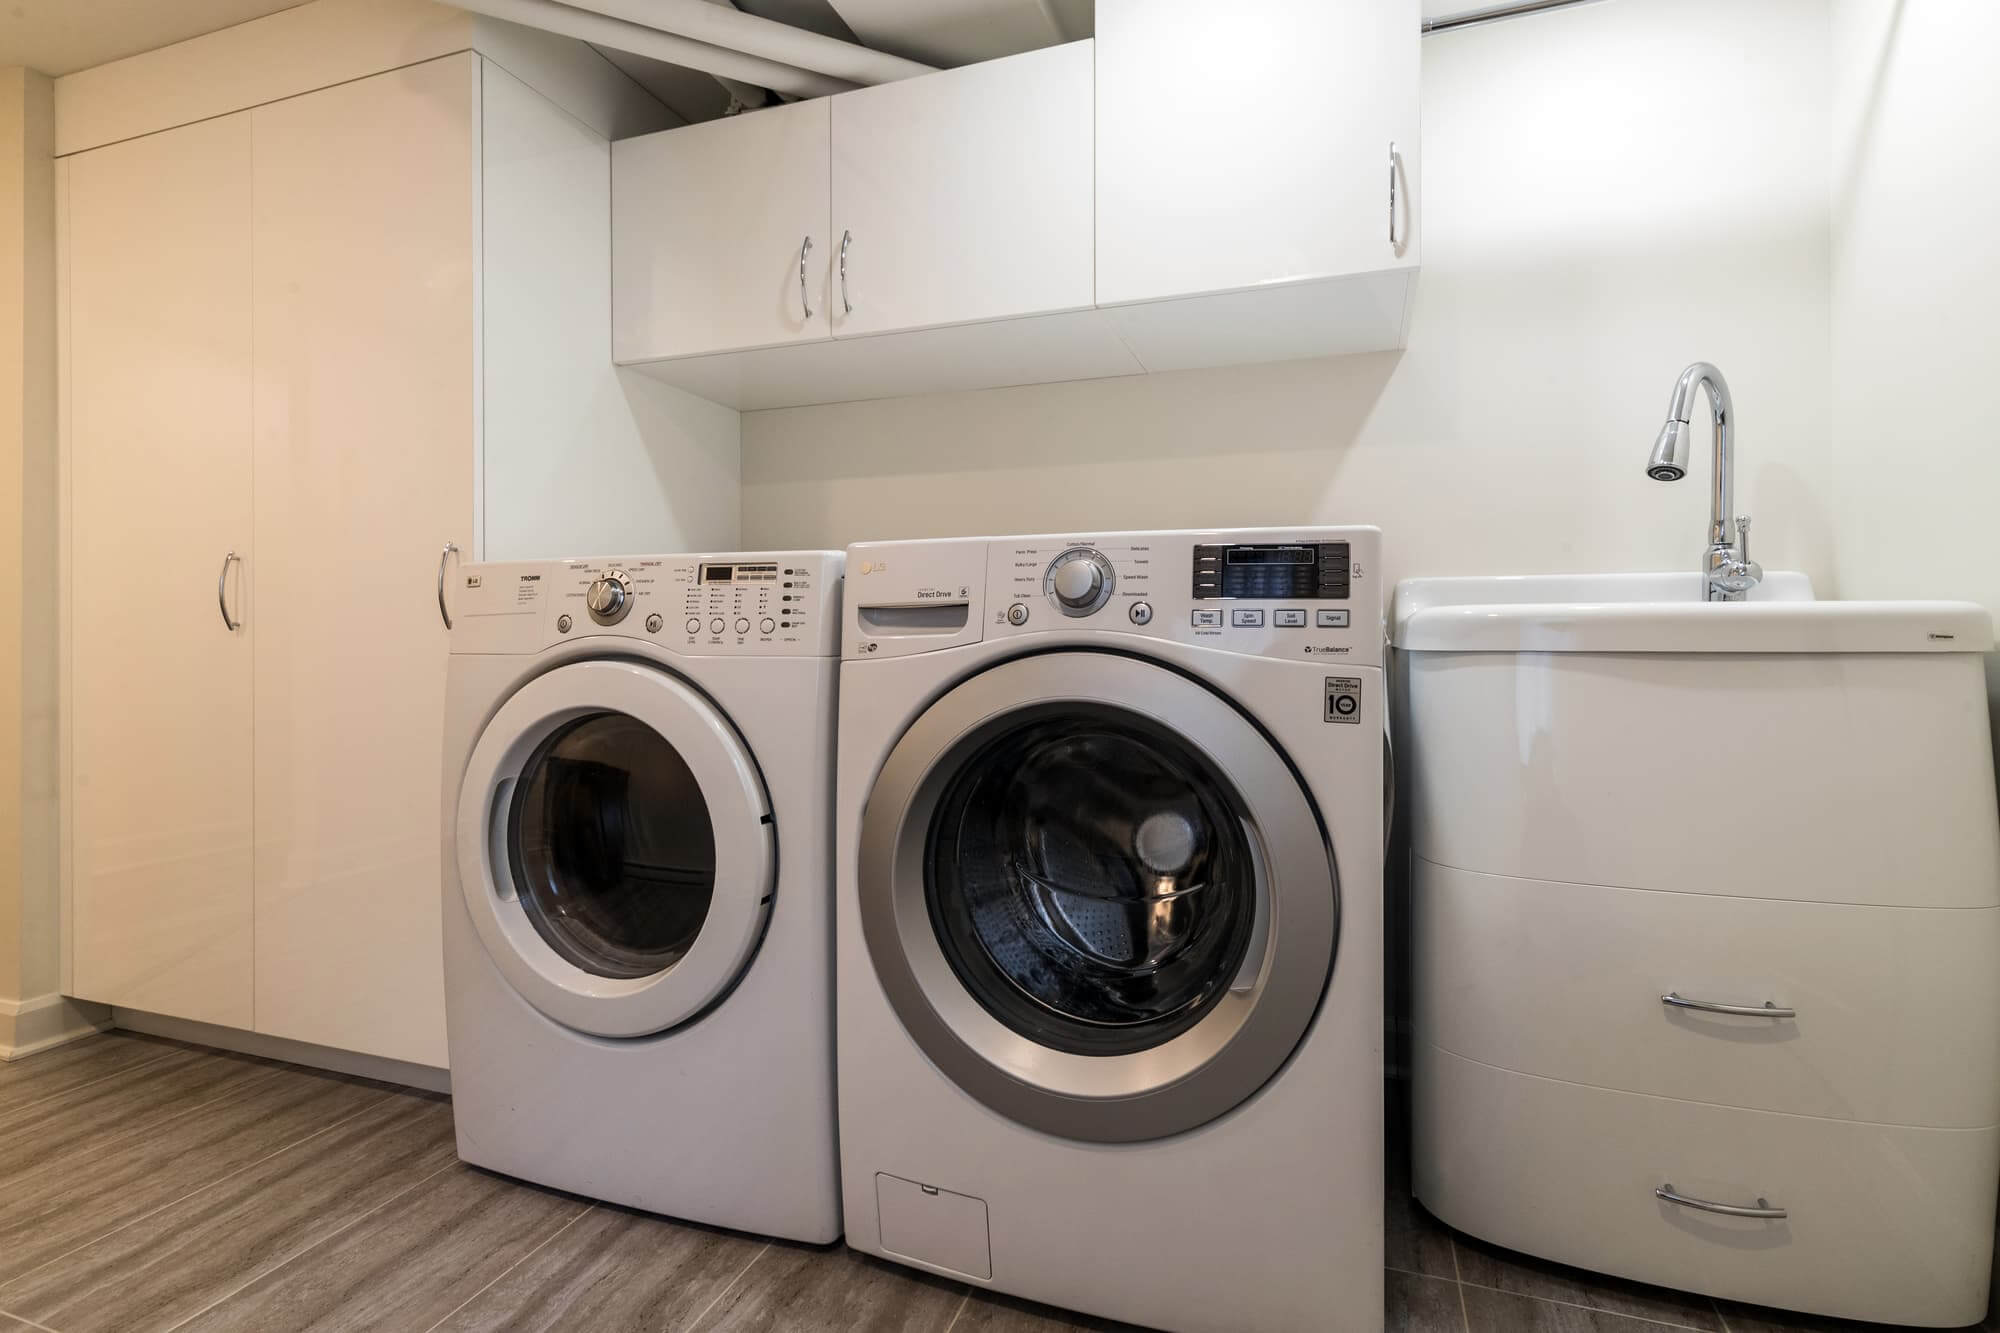 Laundry room ideas in a basement with washer and dryer